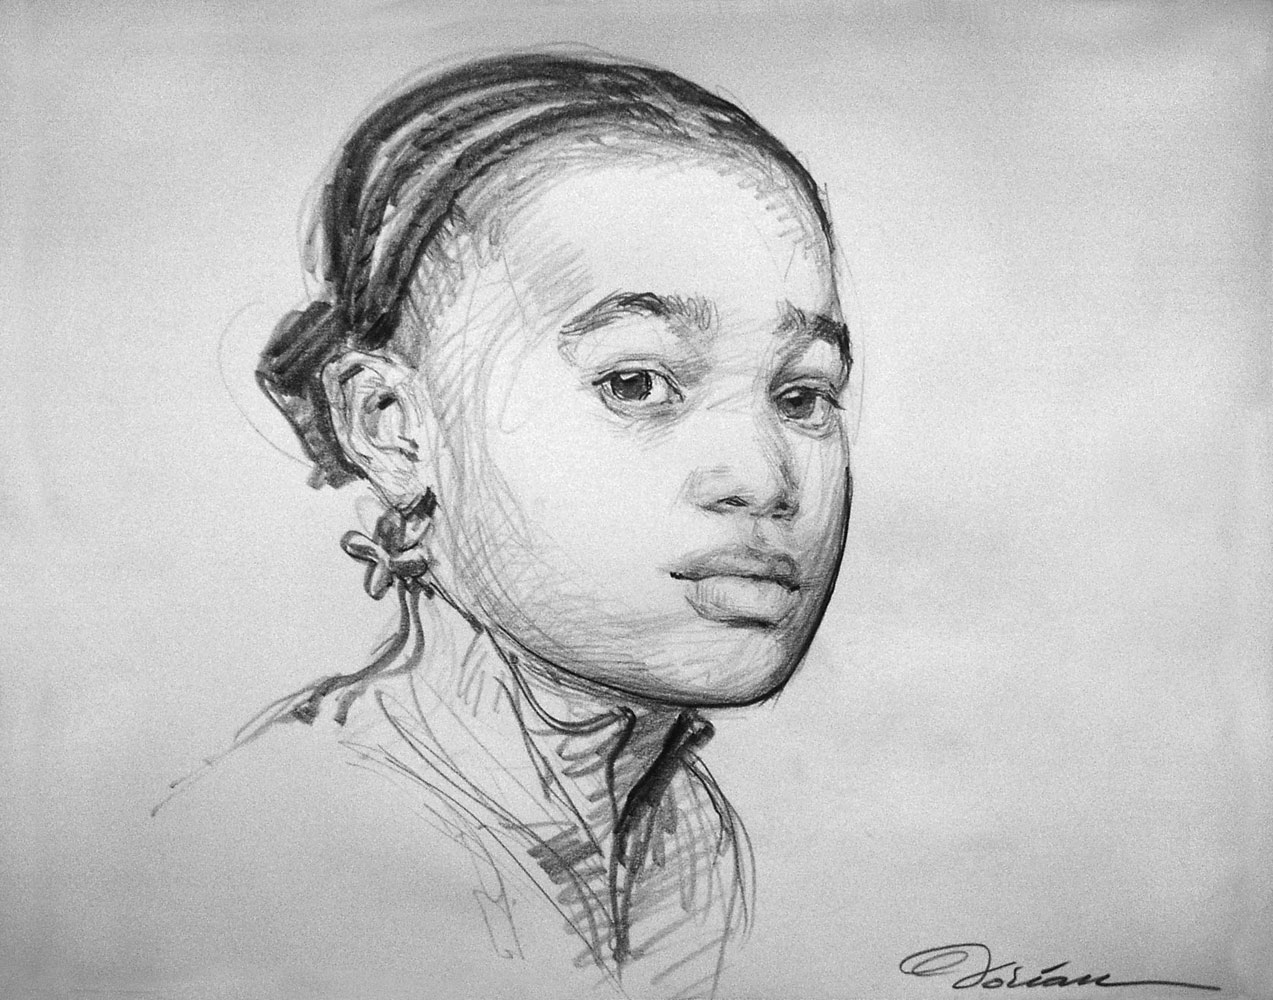 Pencil_Sketches_13.jpg